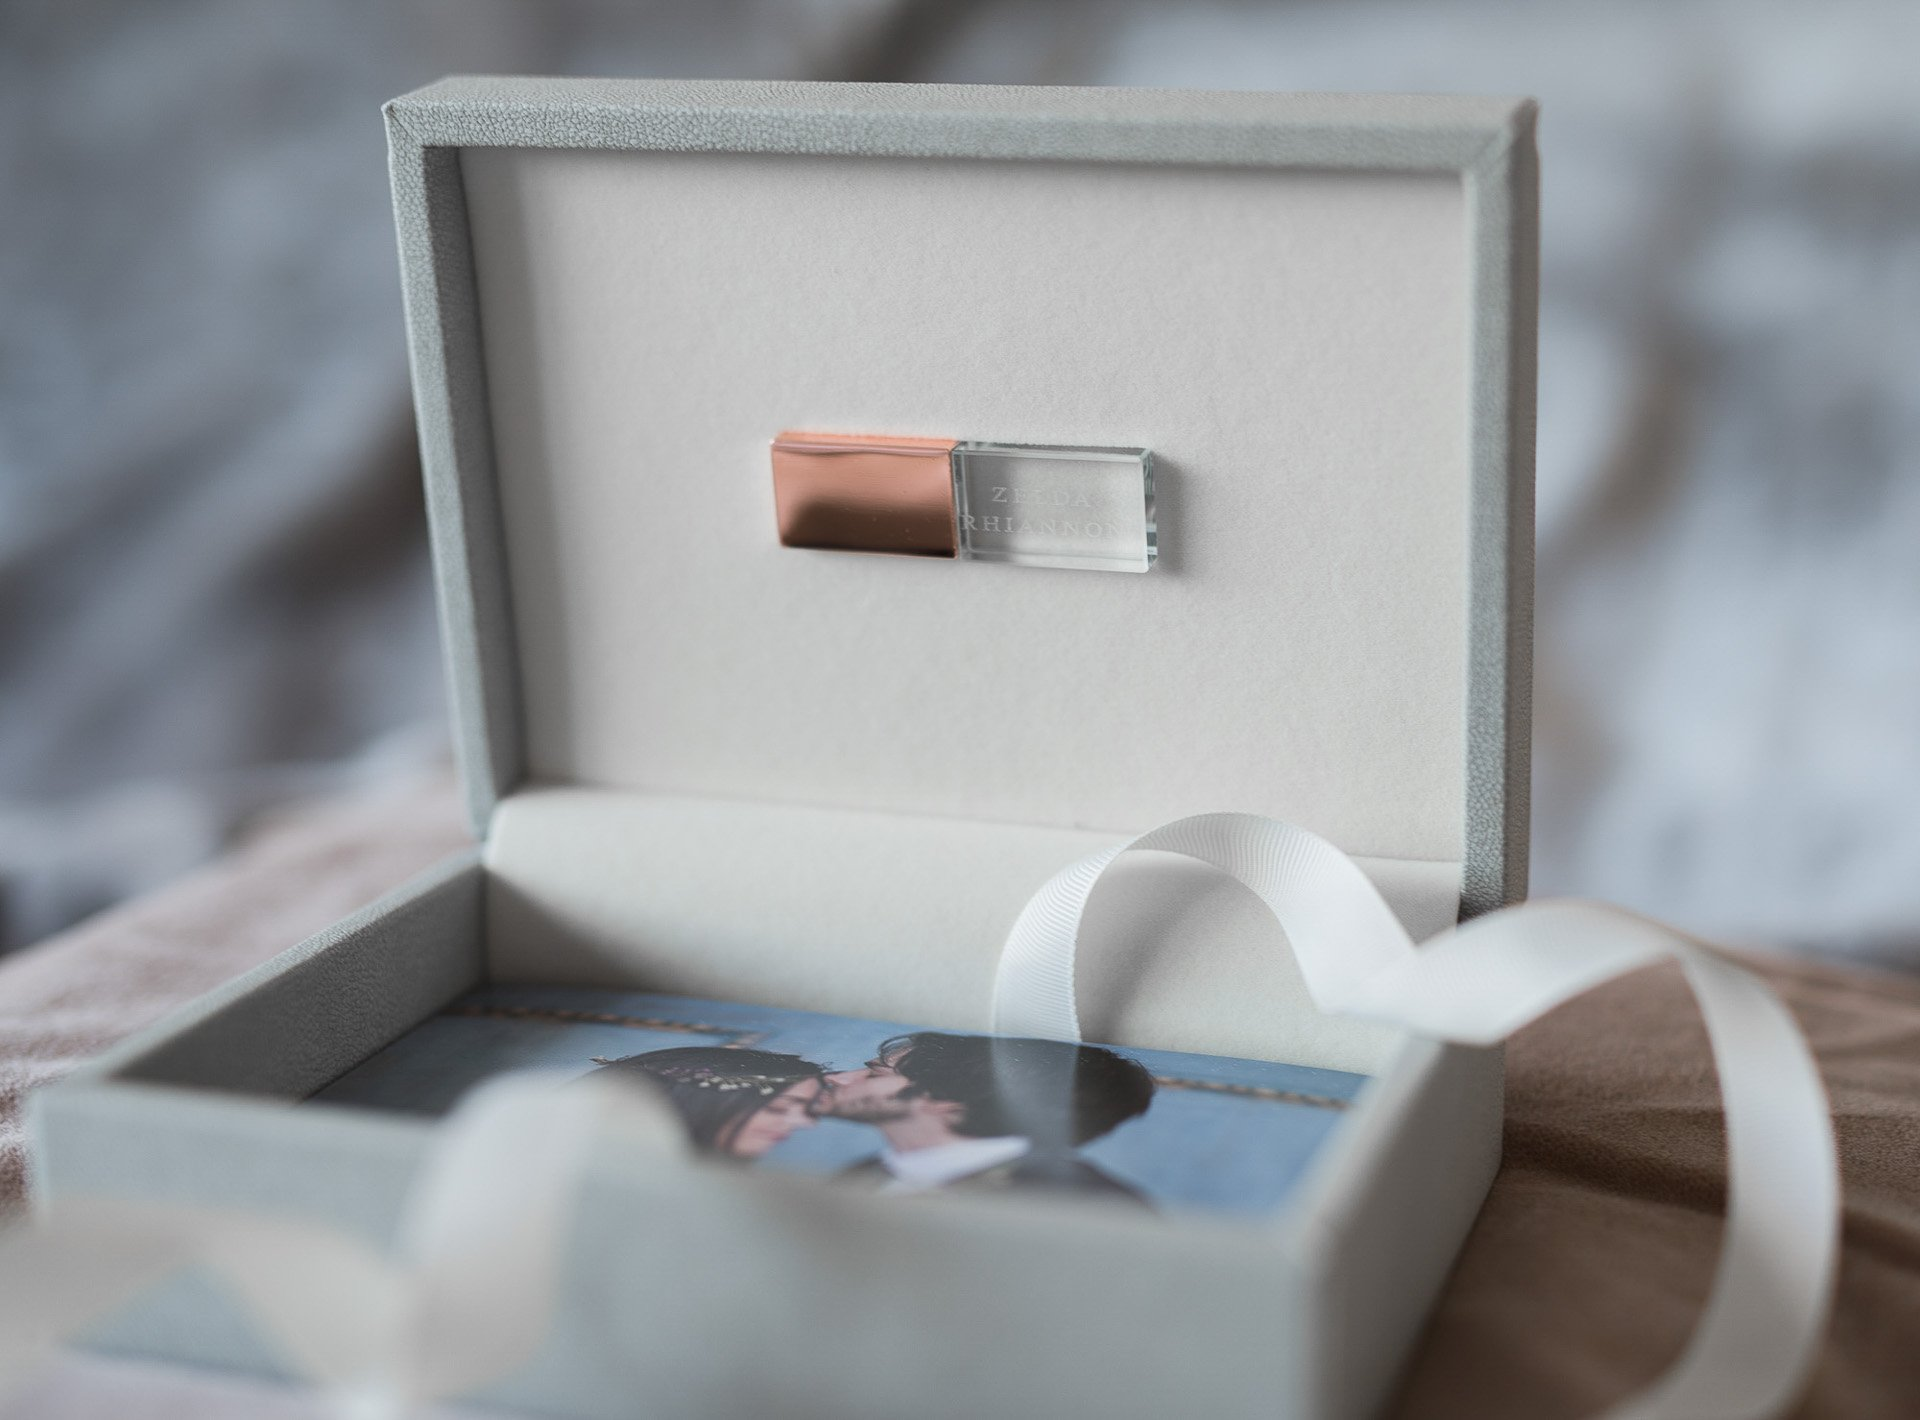 a grey usb box with rose gold usb inside and some photos